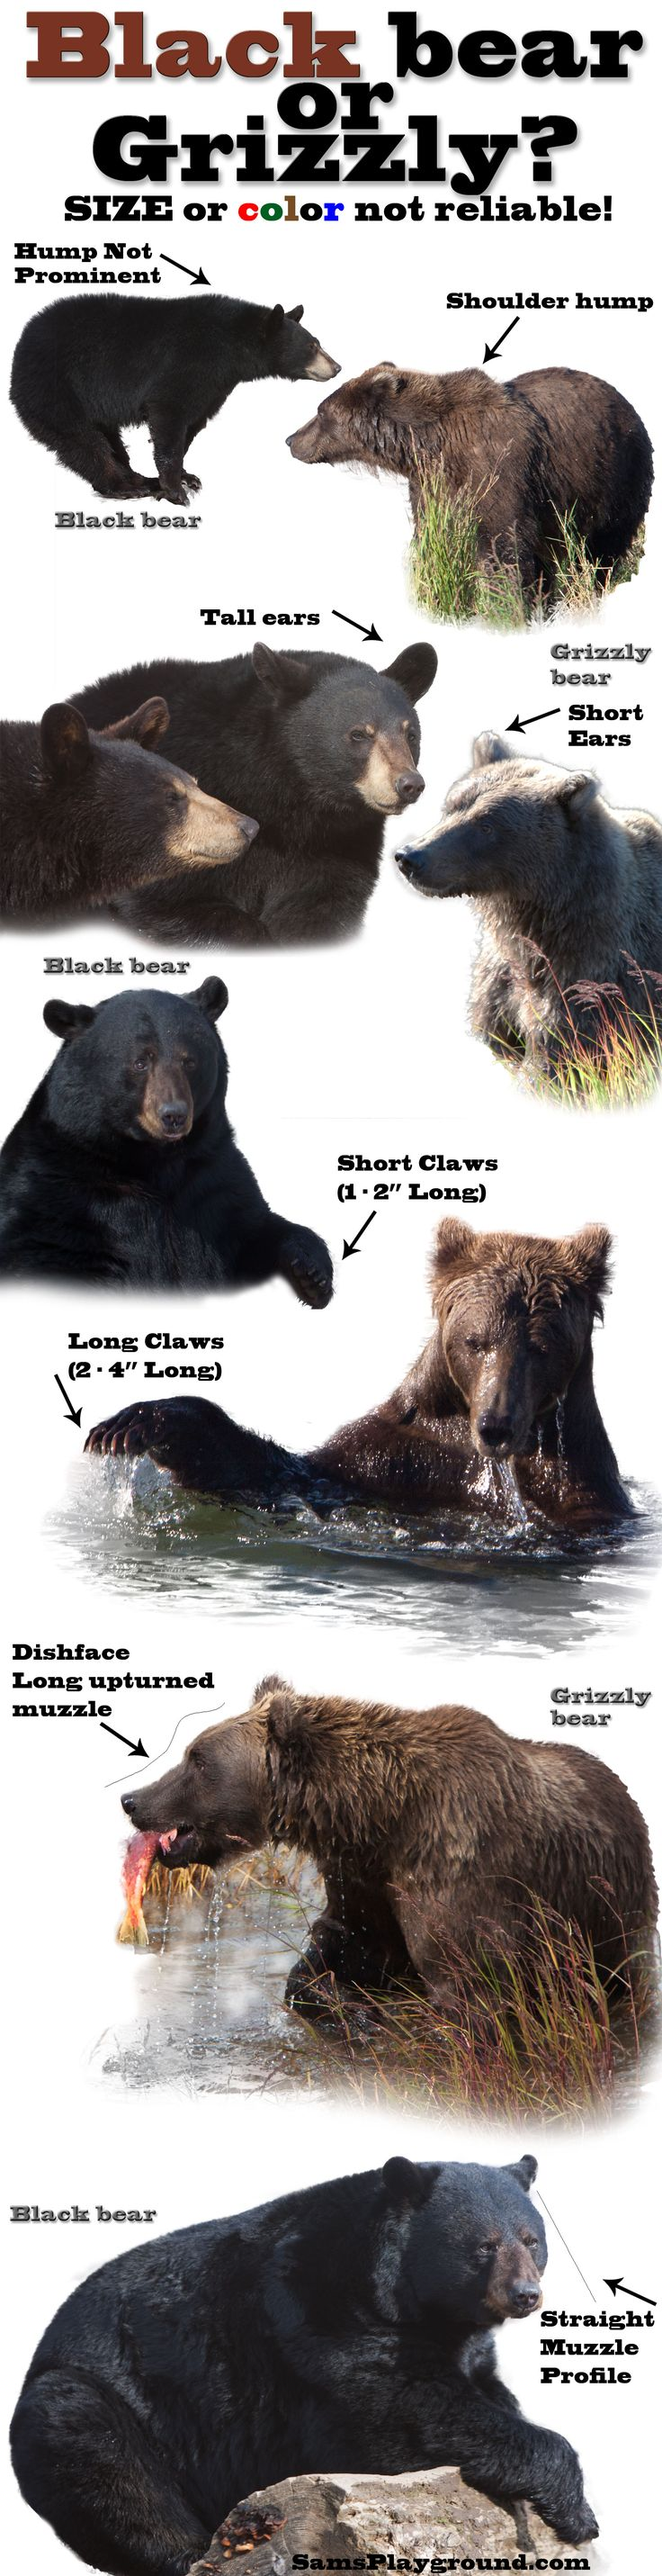 Is it a black bear or a grizzly/brown bear. Don't be confused by color or size. Know how to tell one bear species from another!